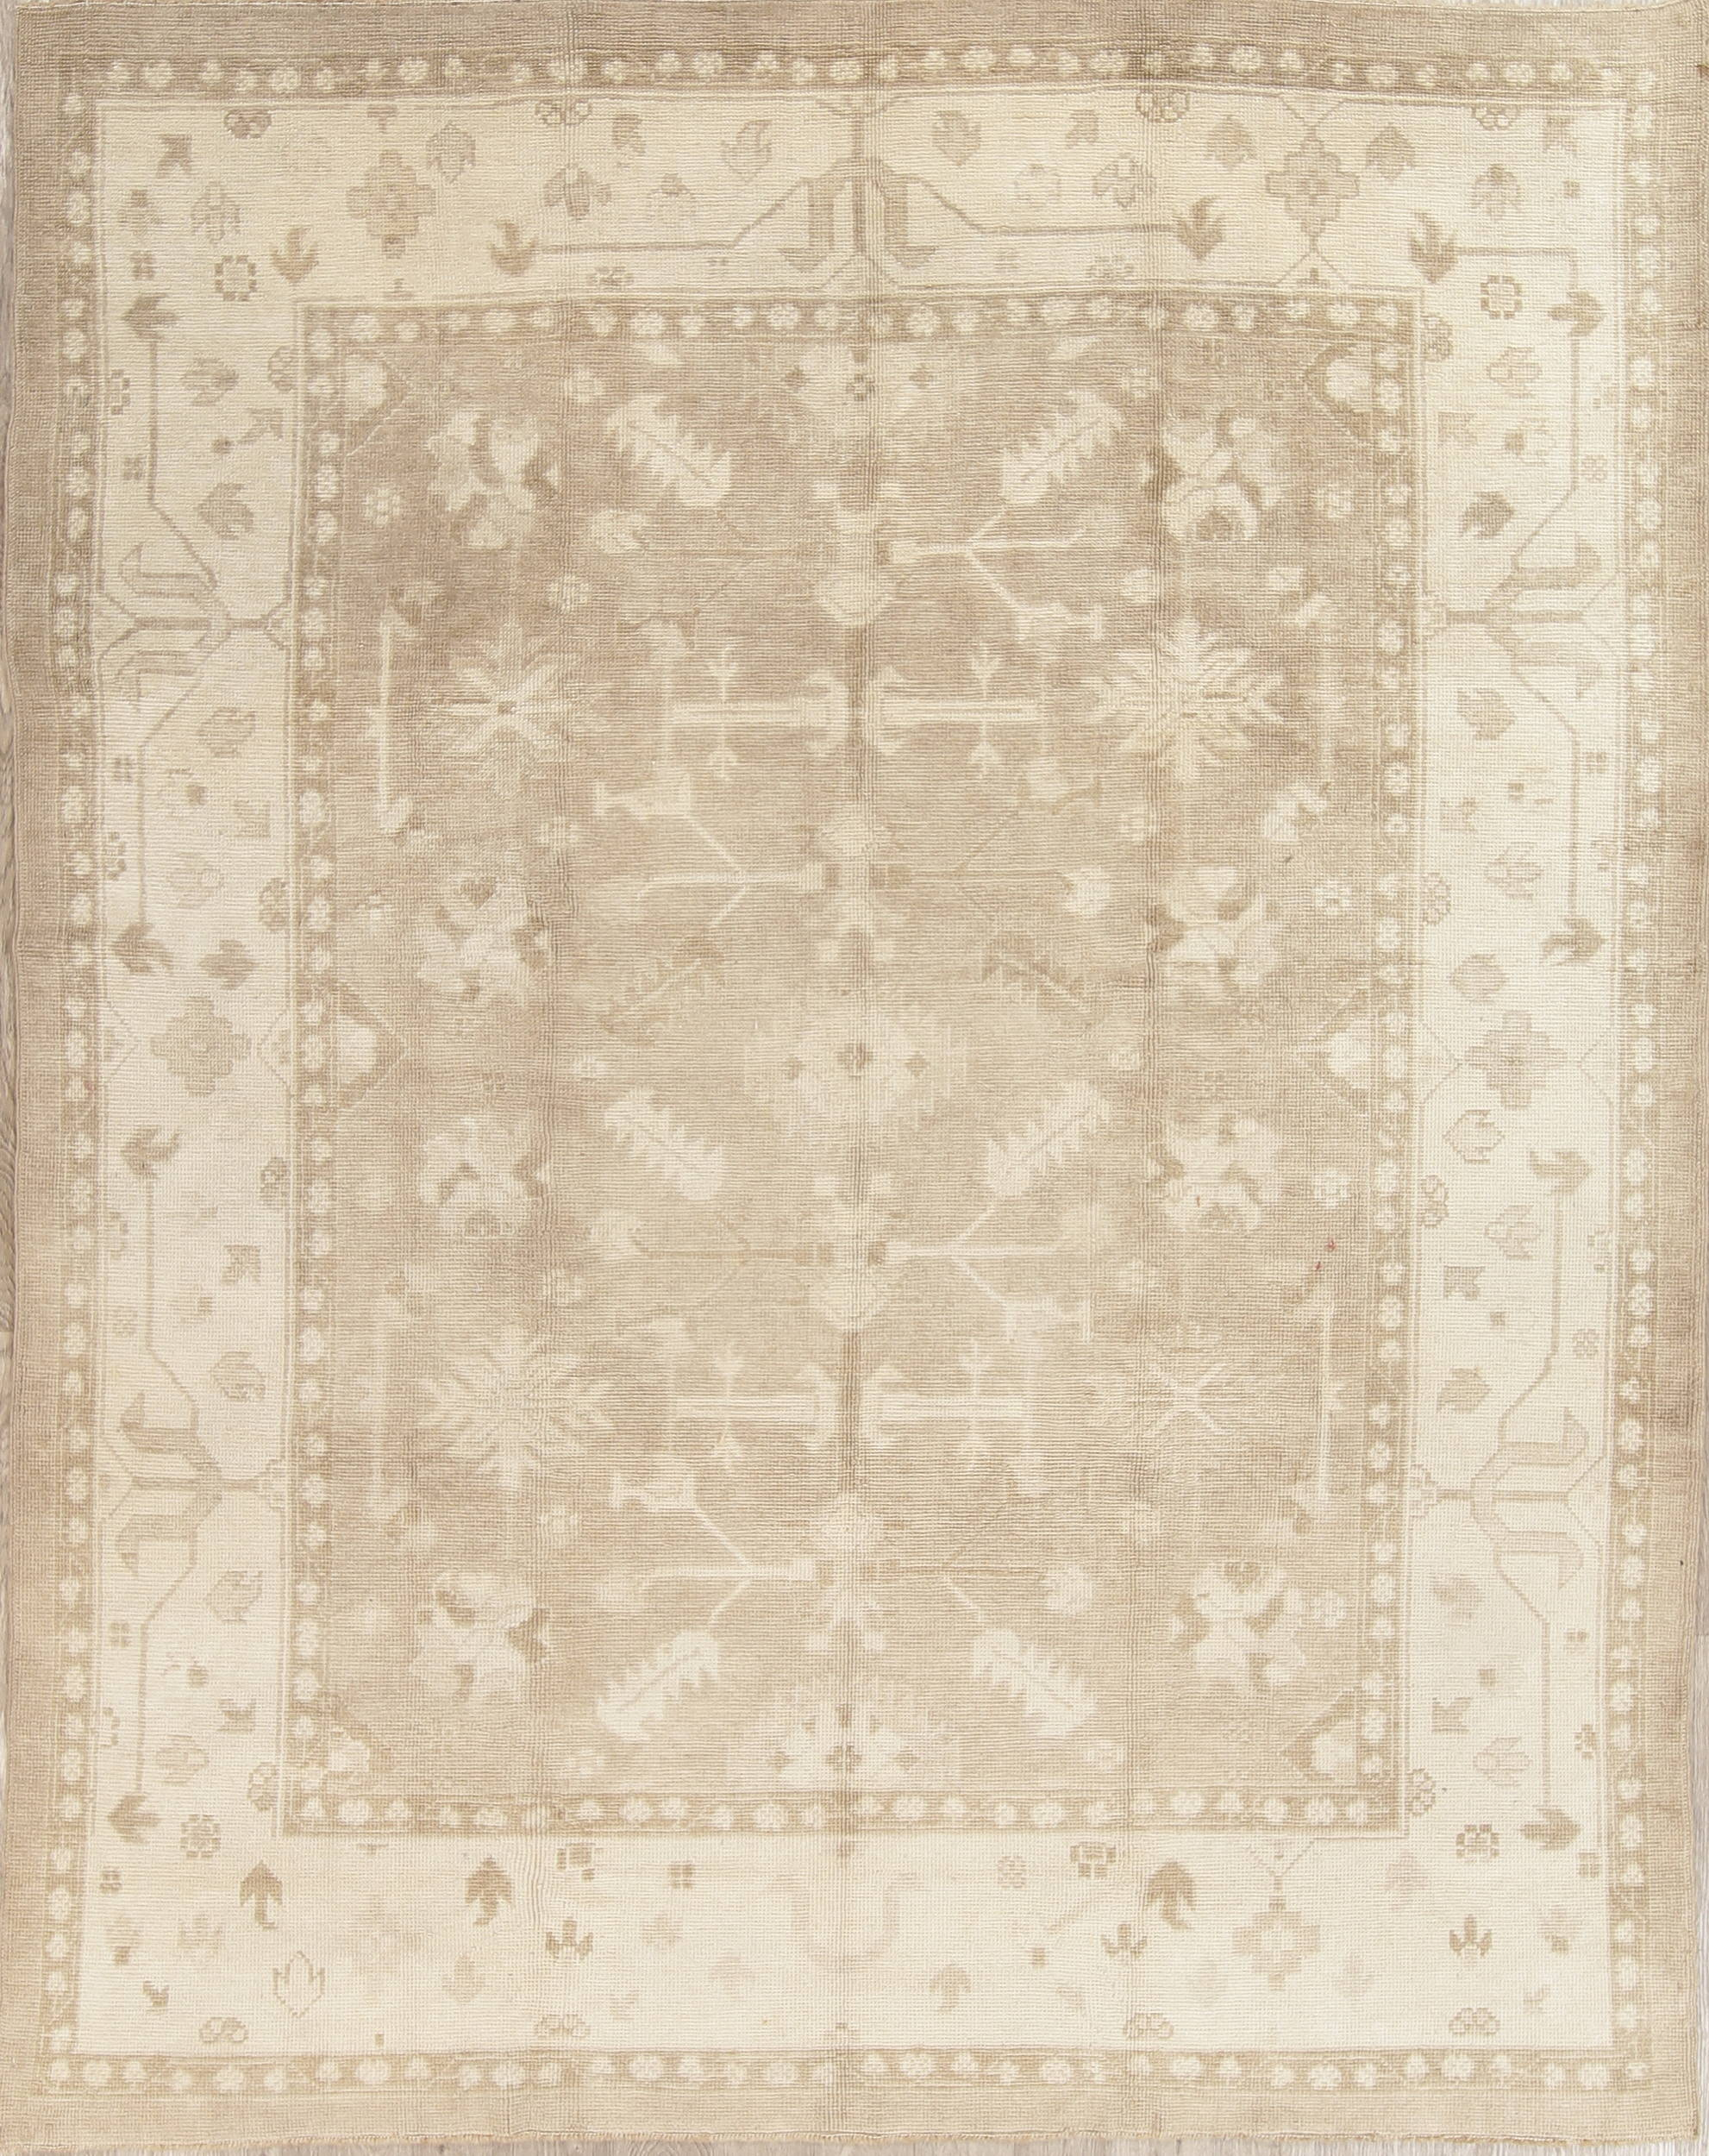 Vegetable Dye Muted Silver Grey Oushak Turkish Hand-Knotted 8x11 Area Rug